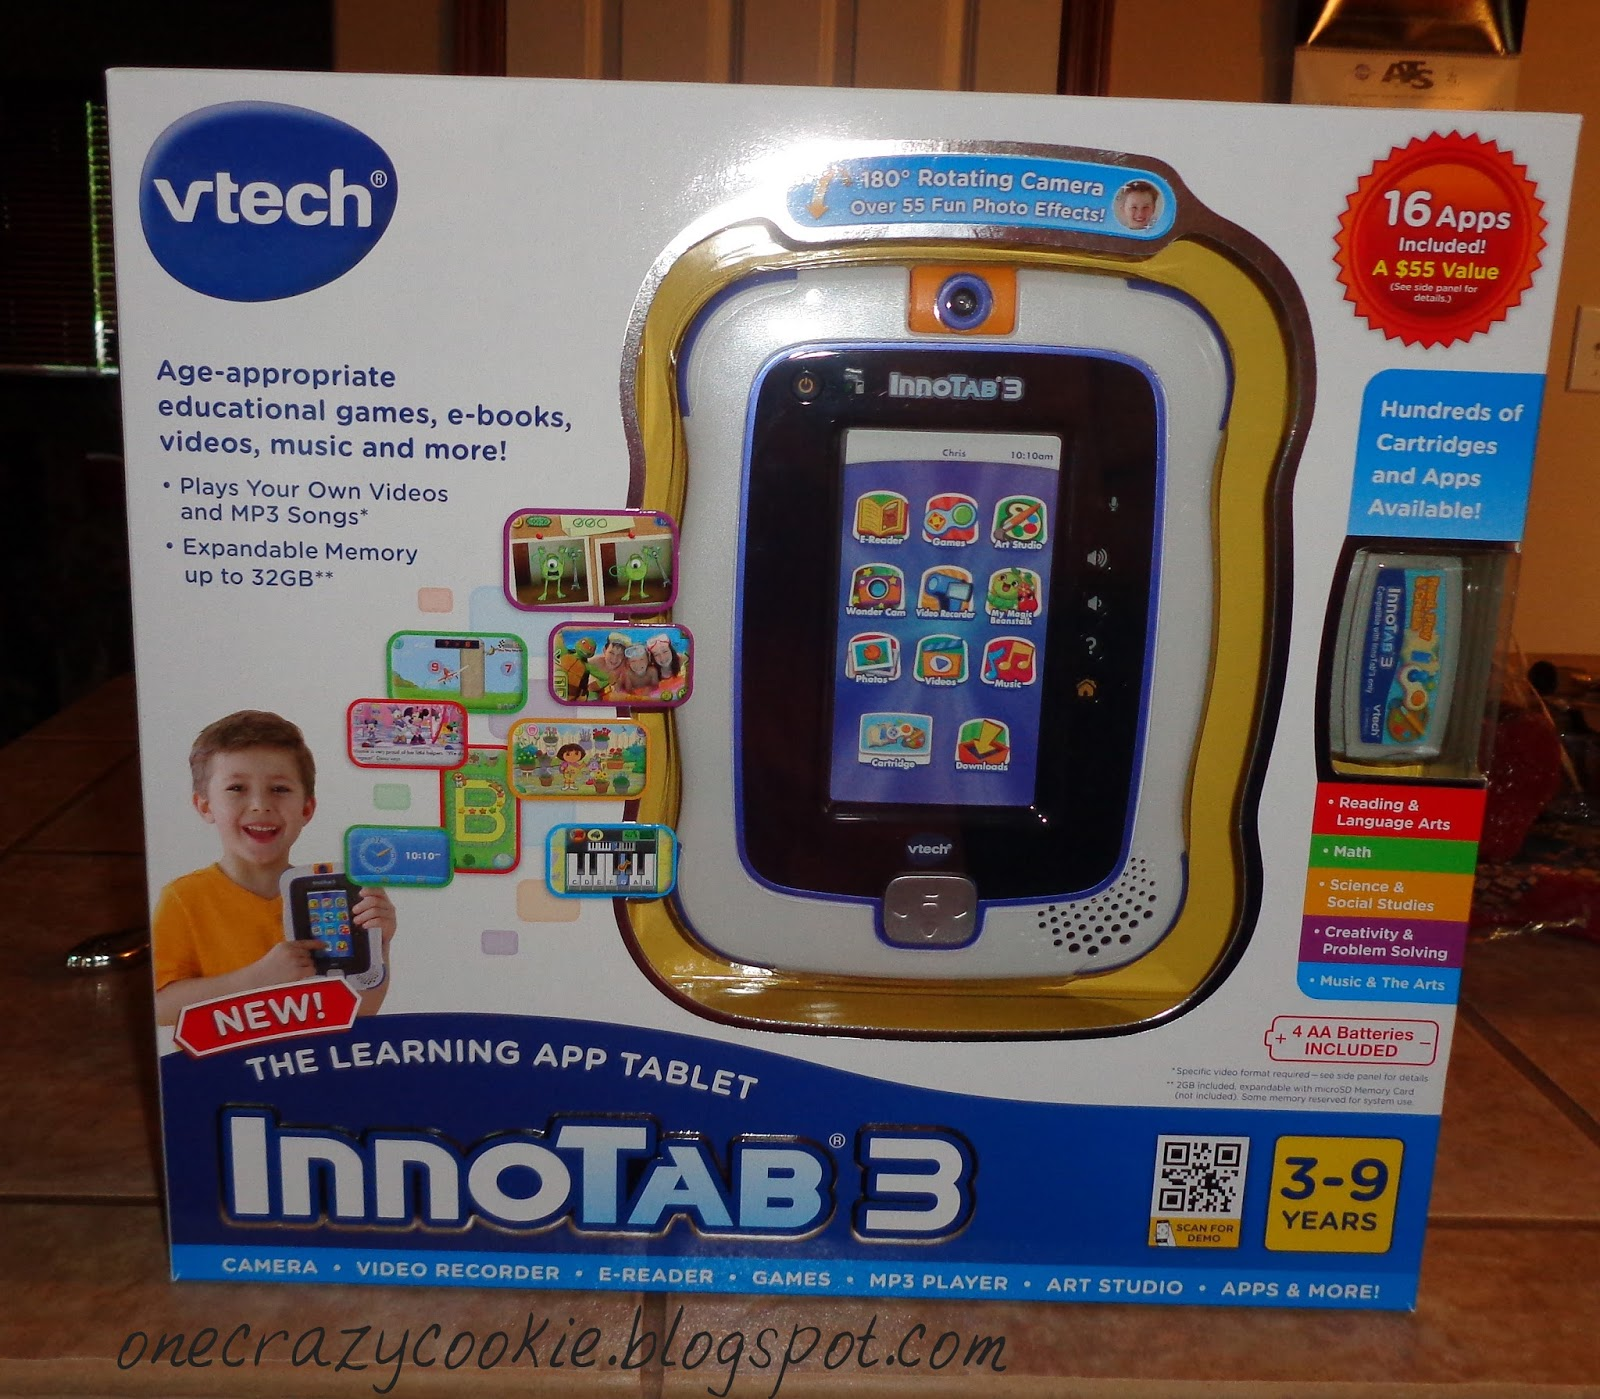 Nov 22, · This video shows how to add a game to your Innotab. Each InnoTab 1 and Innotab 2 you purchase comes with 2 free game downloads. The InnoTab 3 & 3S only comes with 1 free game download.